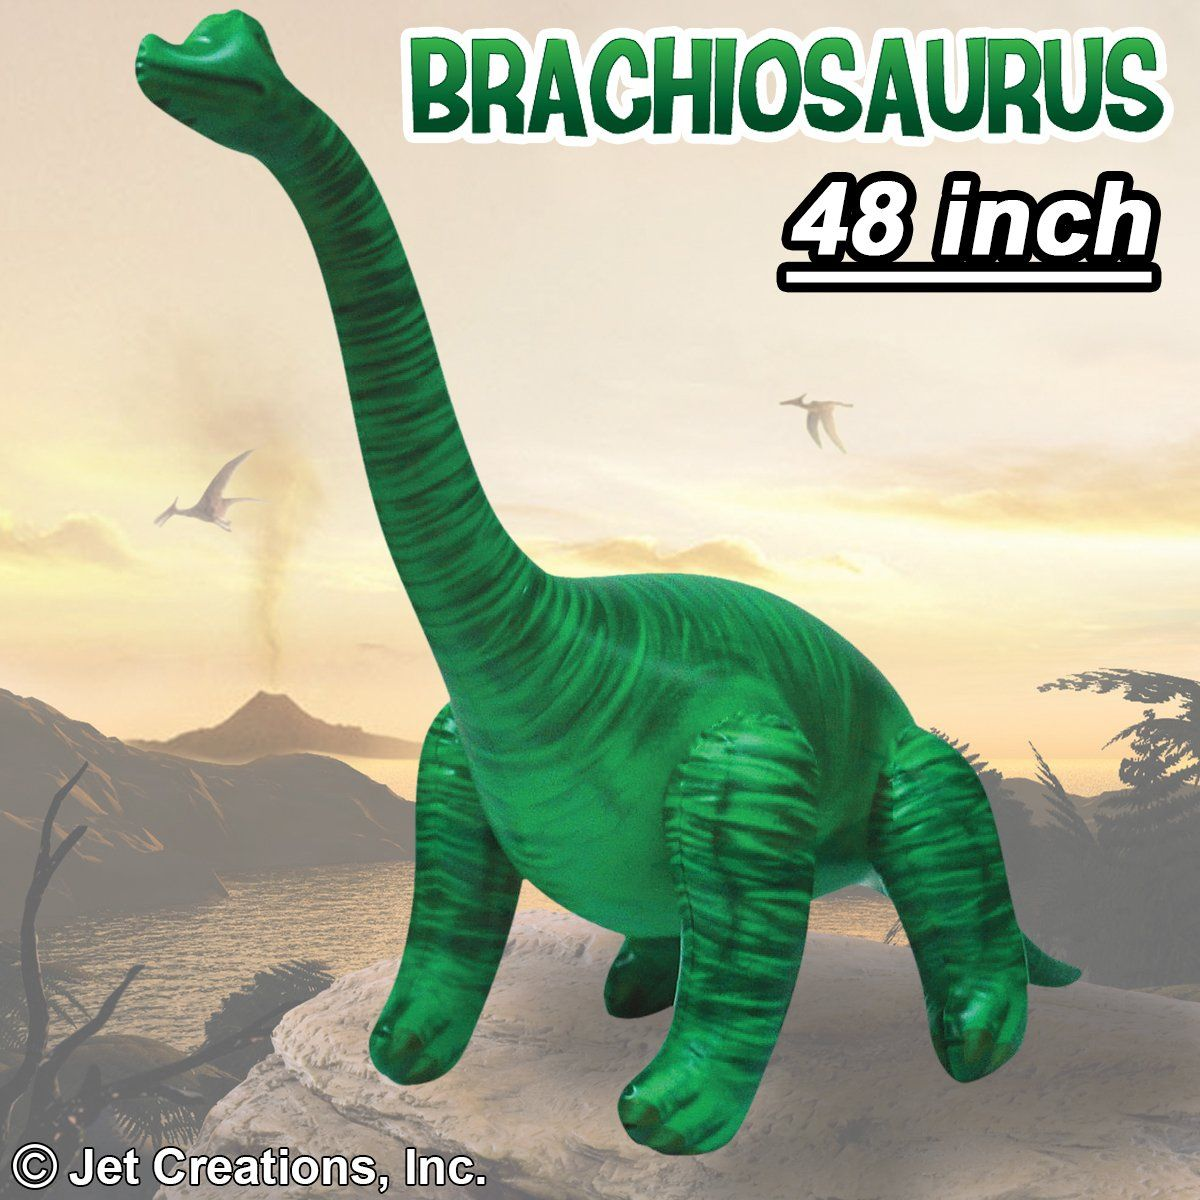 Inflatable Brachiosaurus, 48 inch Long [DIBRAC4] Best